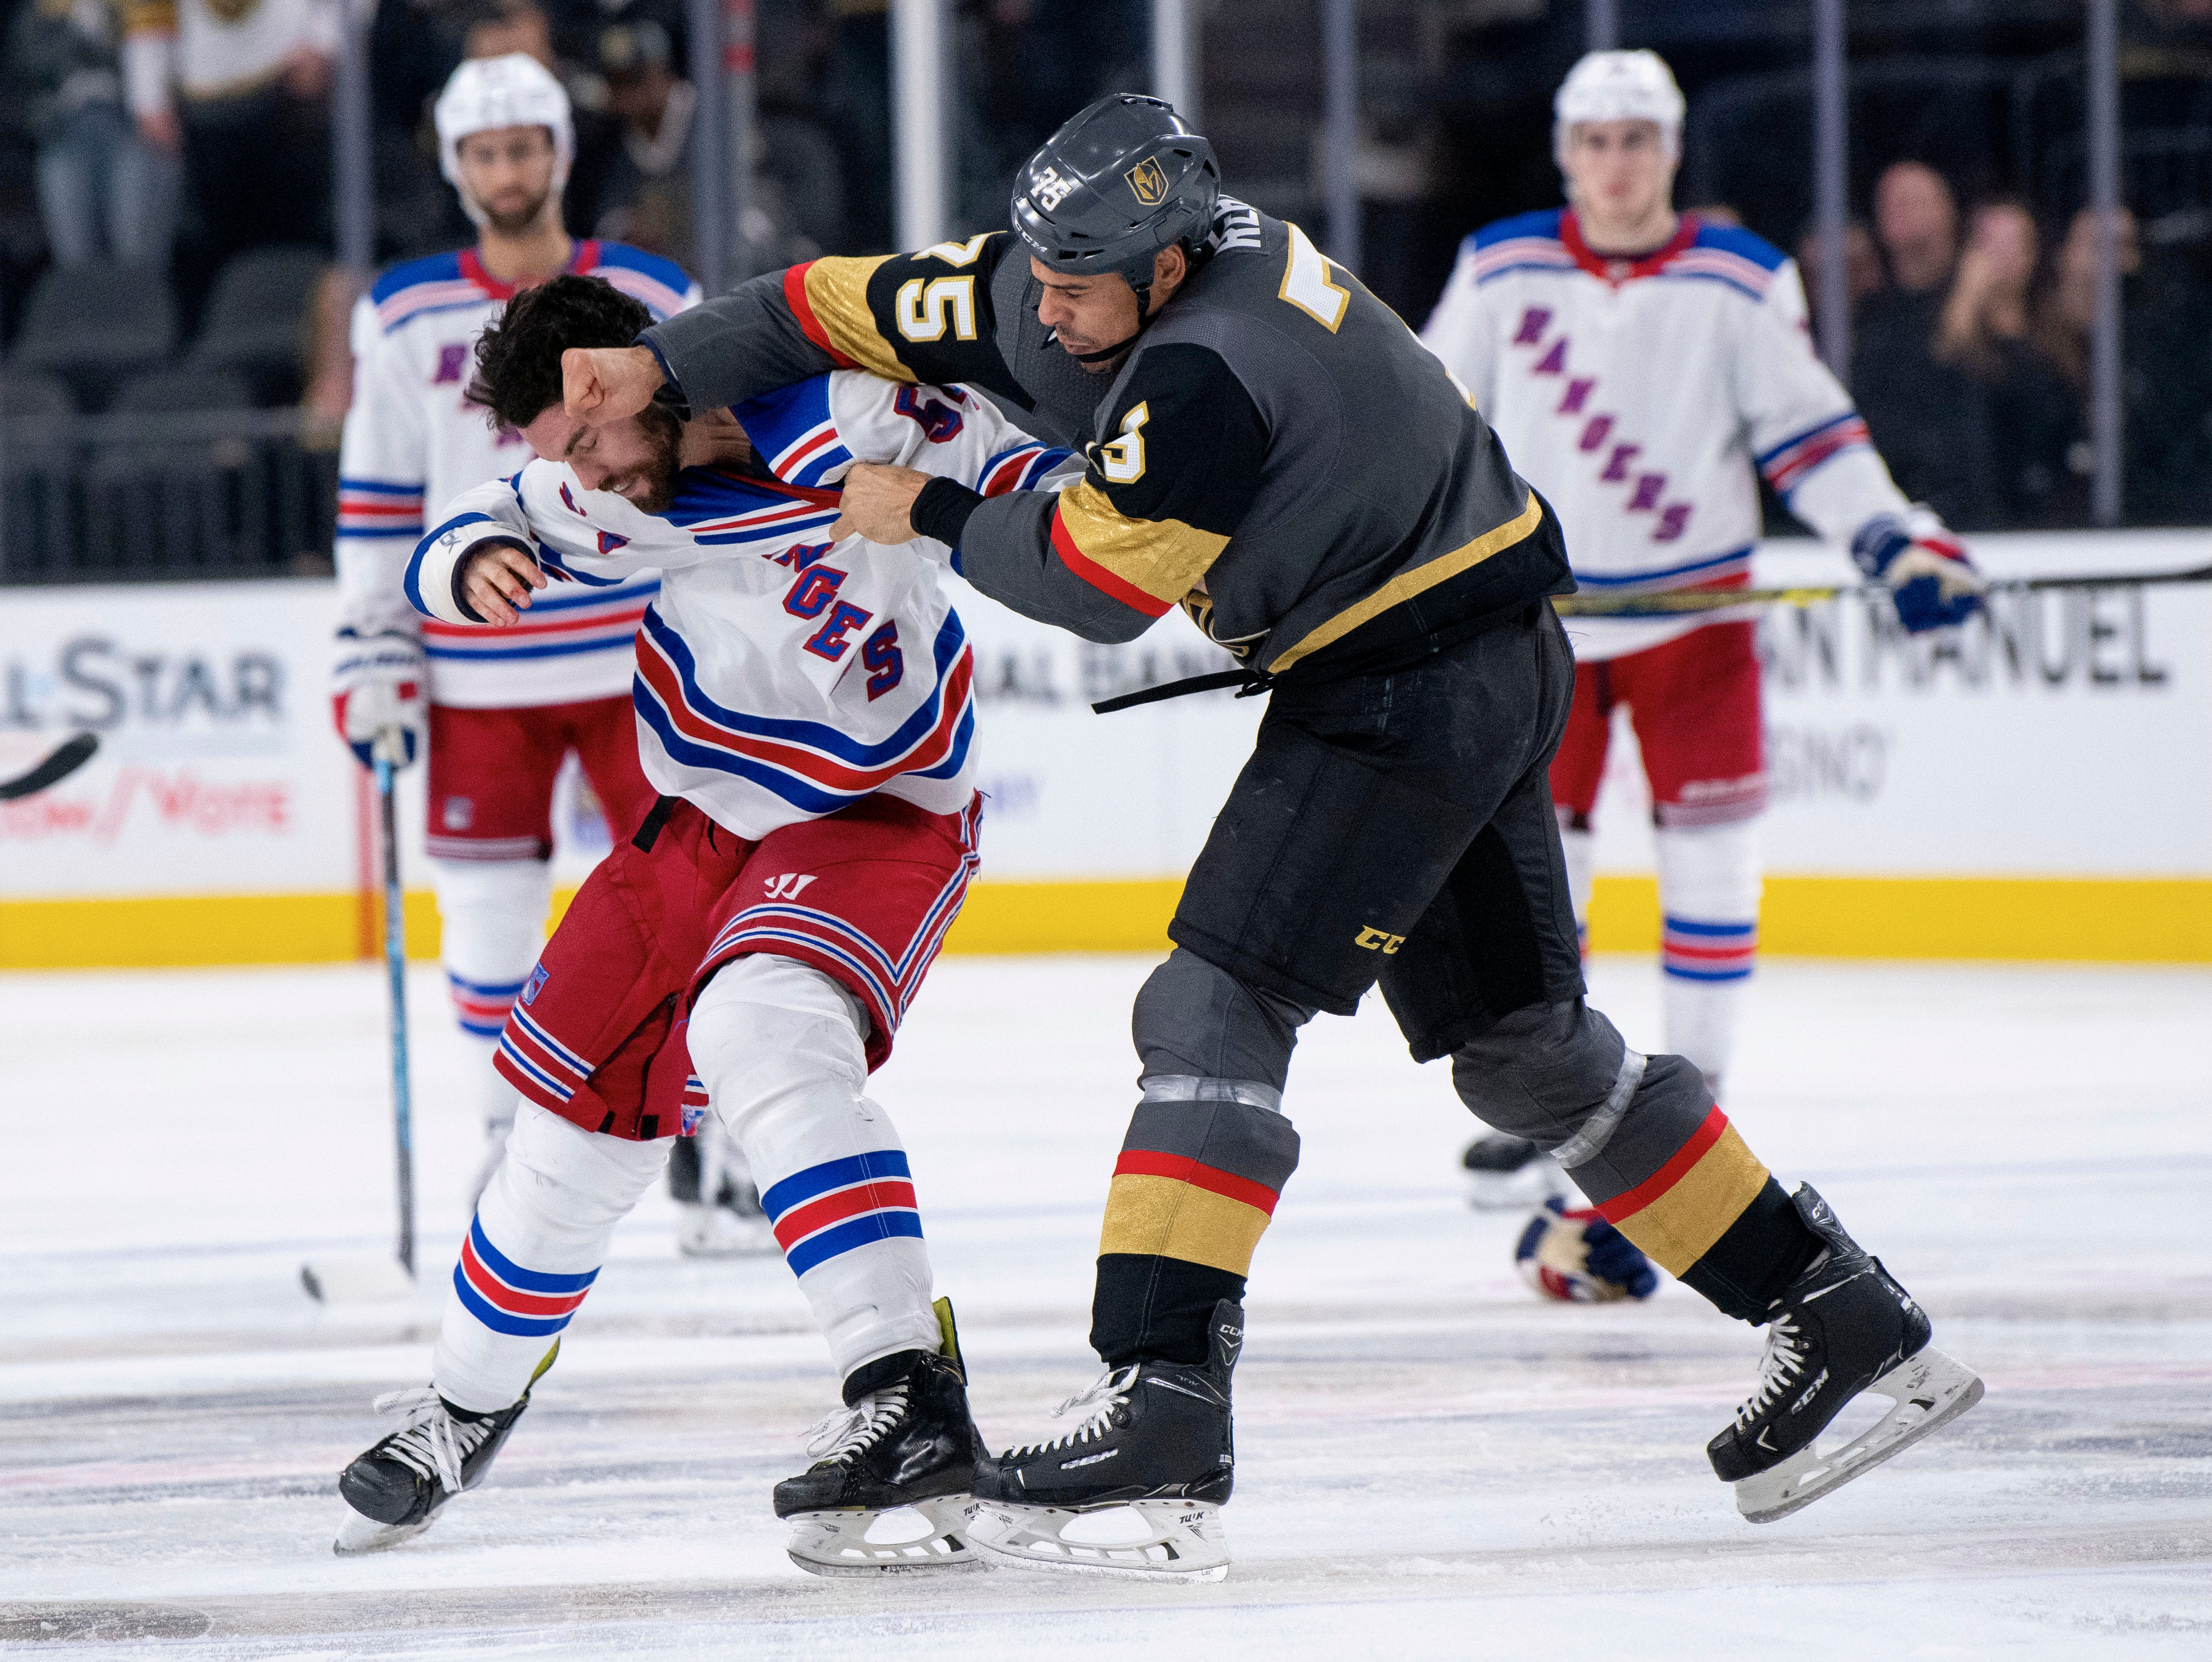 Jan. 8: New York Rangers' Adam McQuaid vs. Vegas Golden Knights' Ryan Reaves.